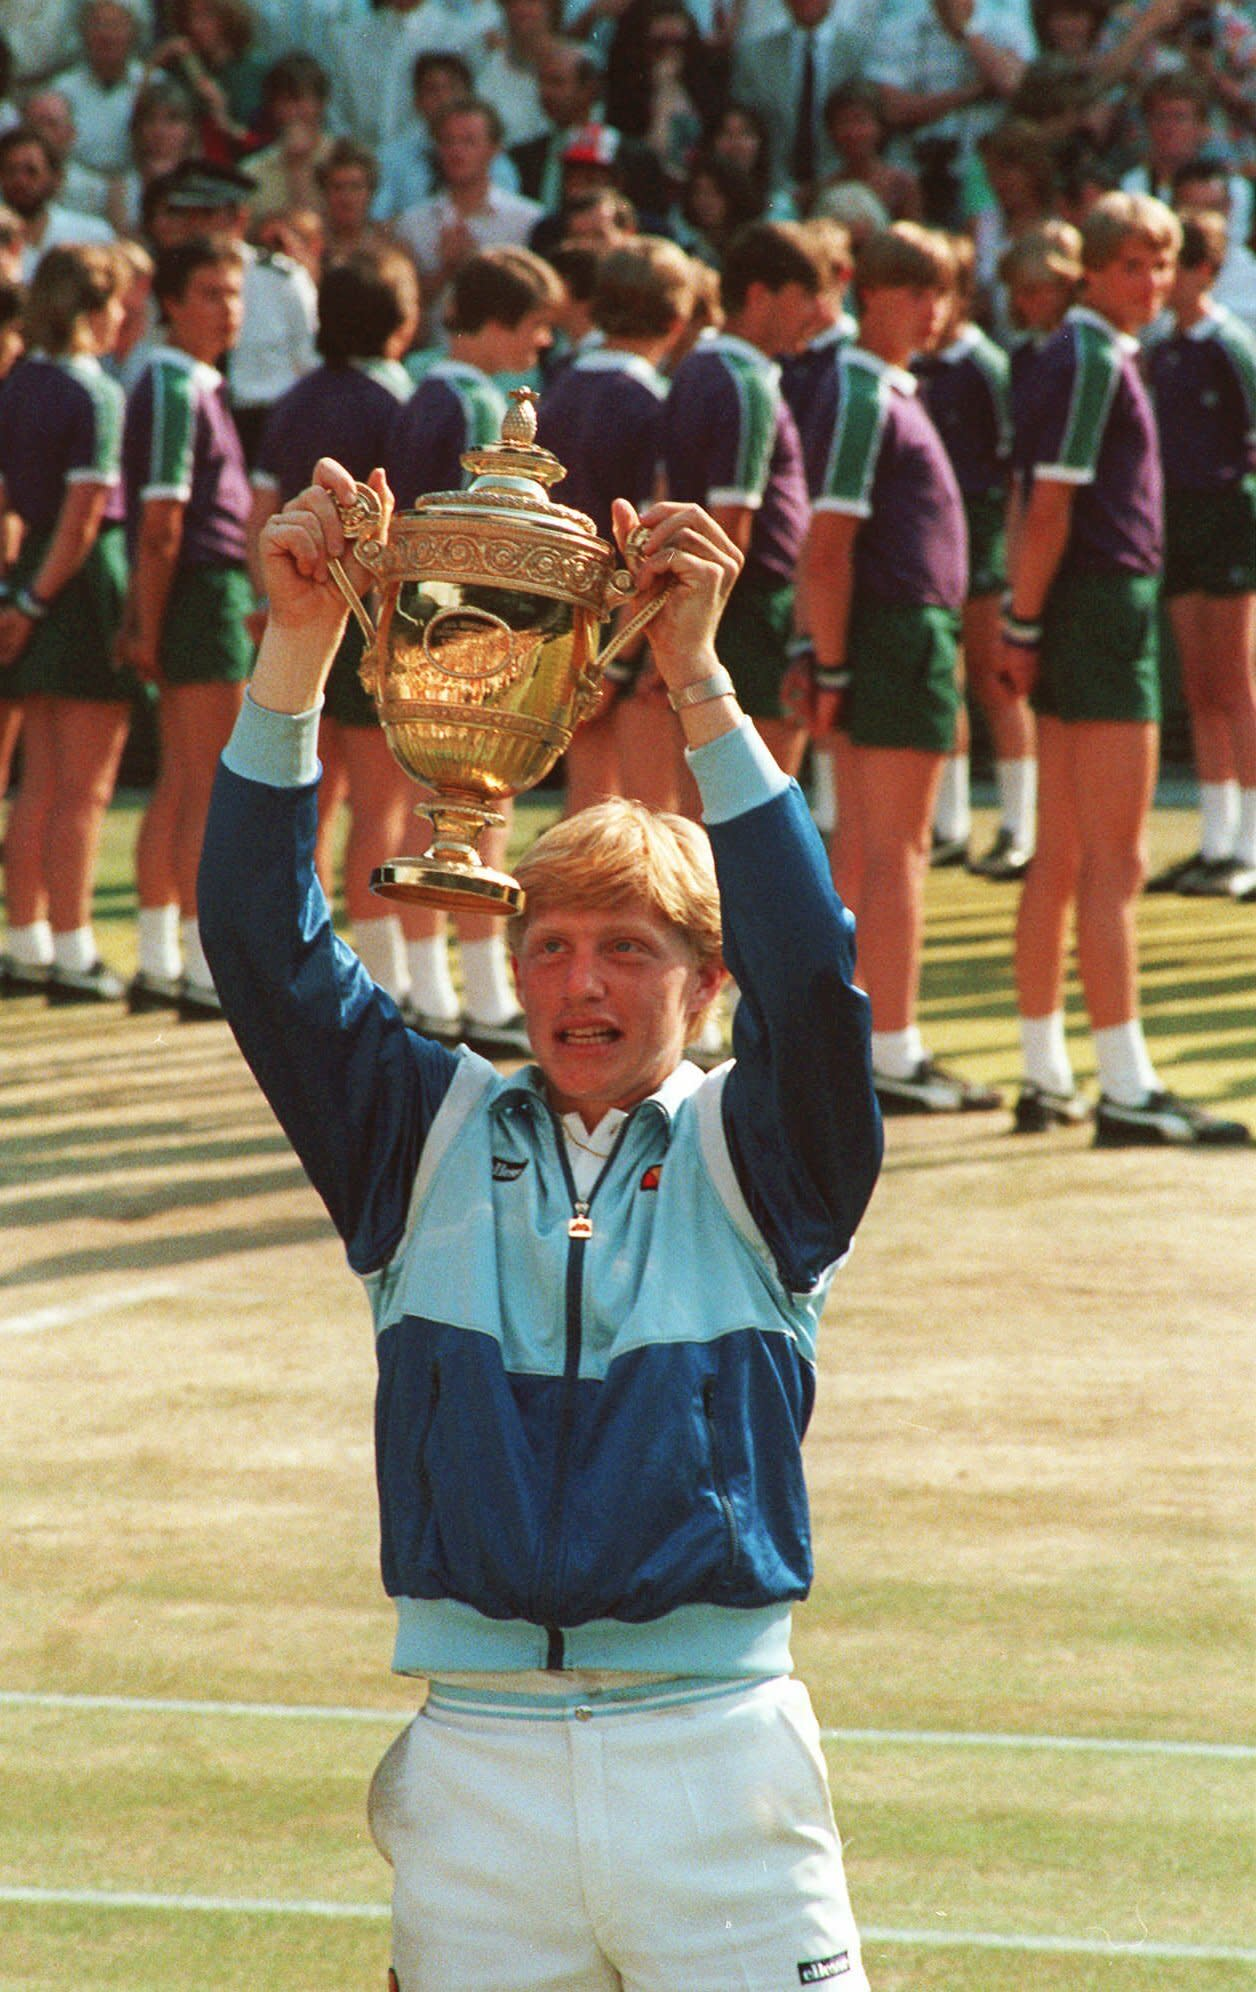 FILE - In this July 7, 1985, file photo, 17-year-old Boris Becker holds the Wimbledon trophy aloft after defeating South Africa's Kevin Curren. (AP Photo/Bob Dear, File)